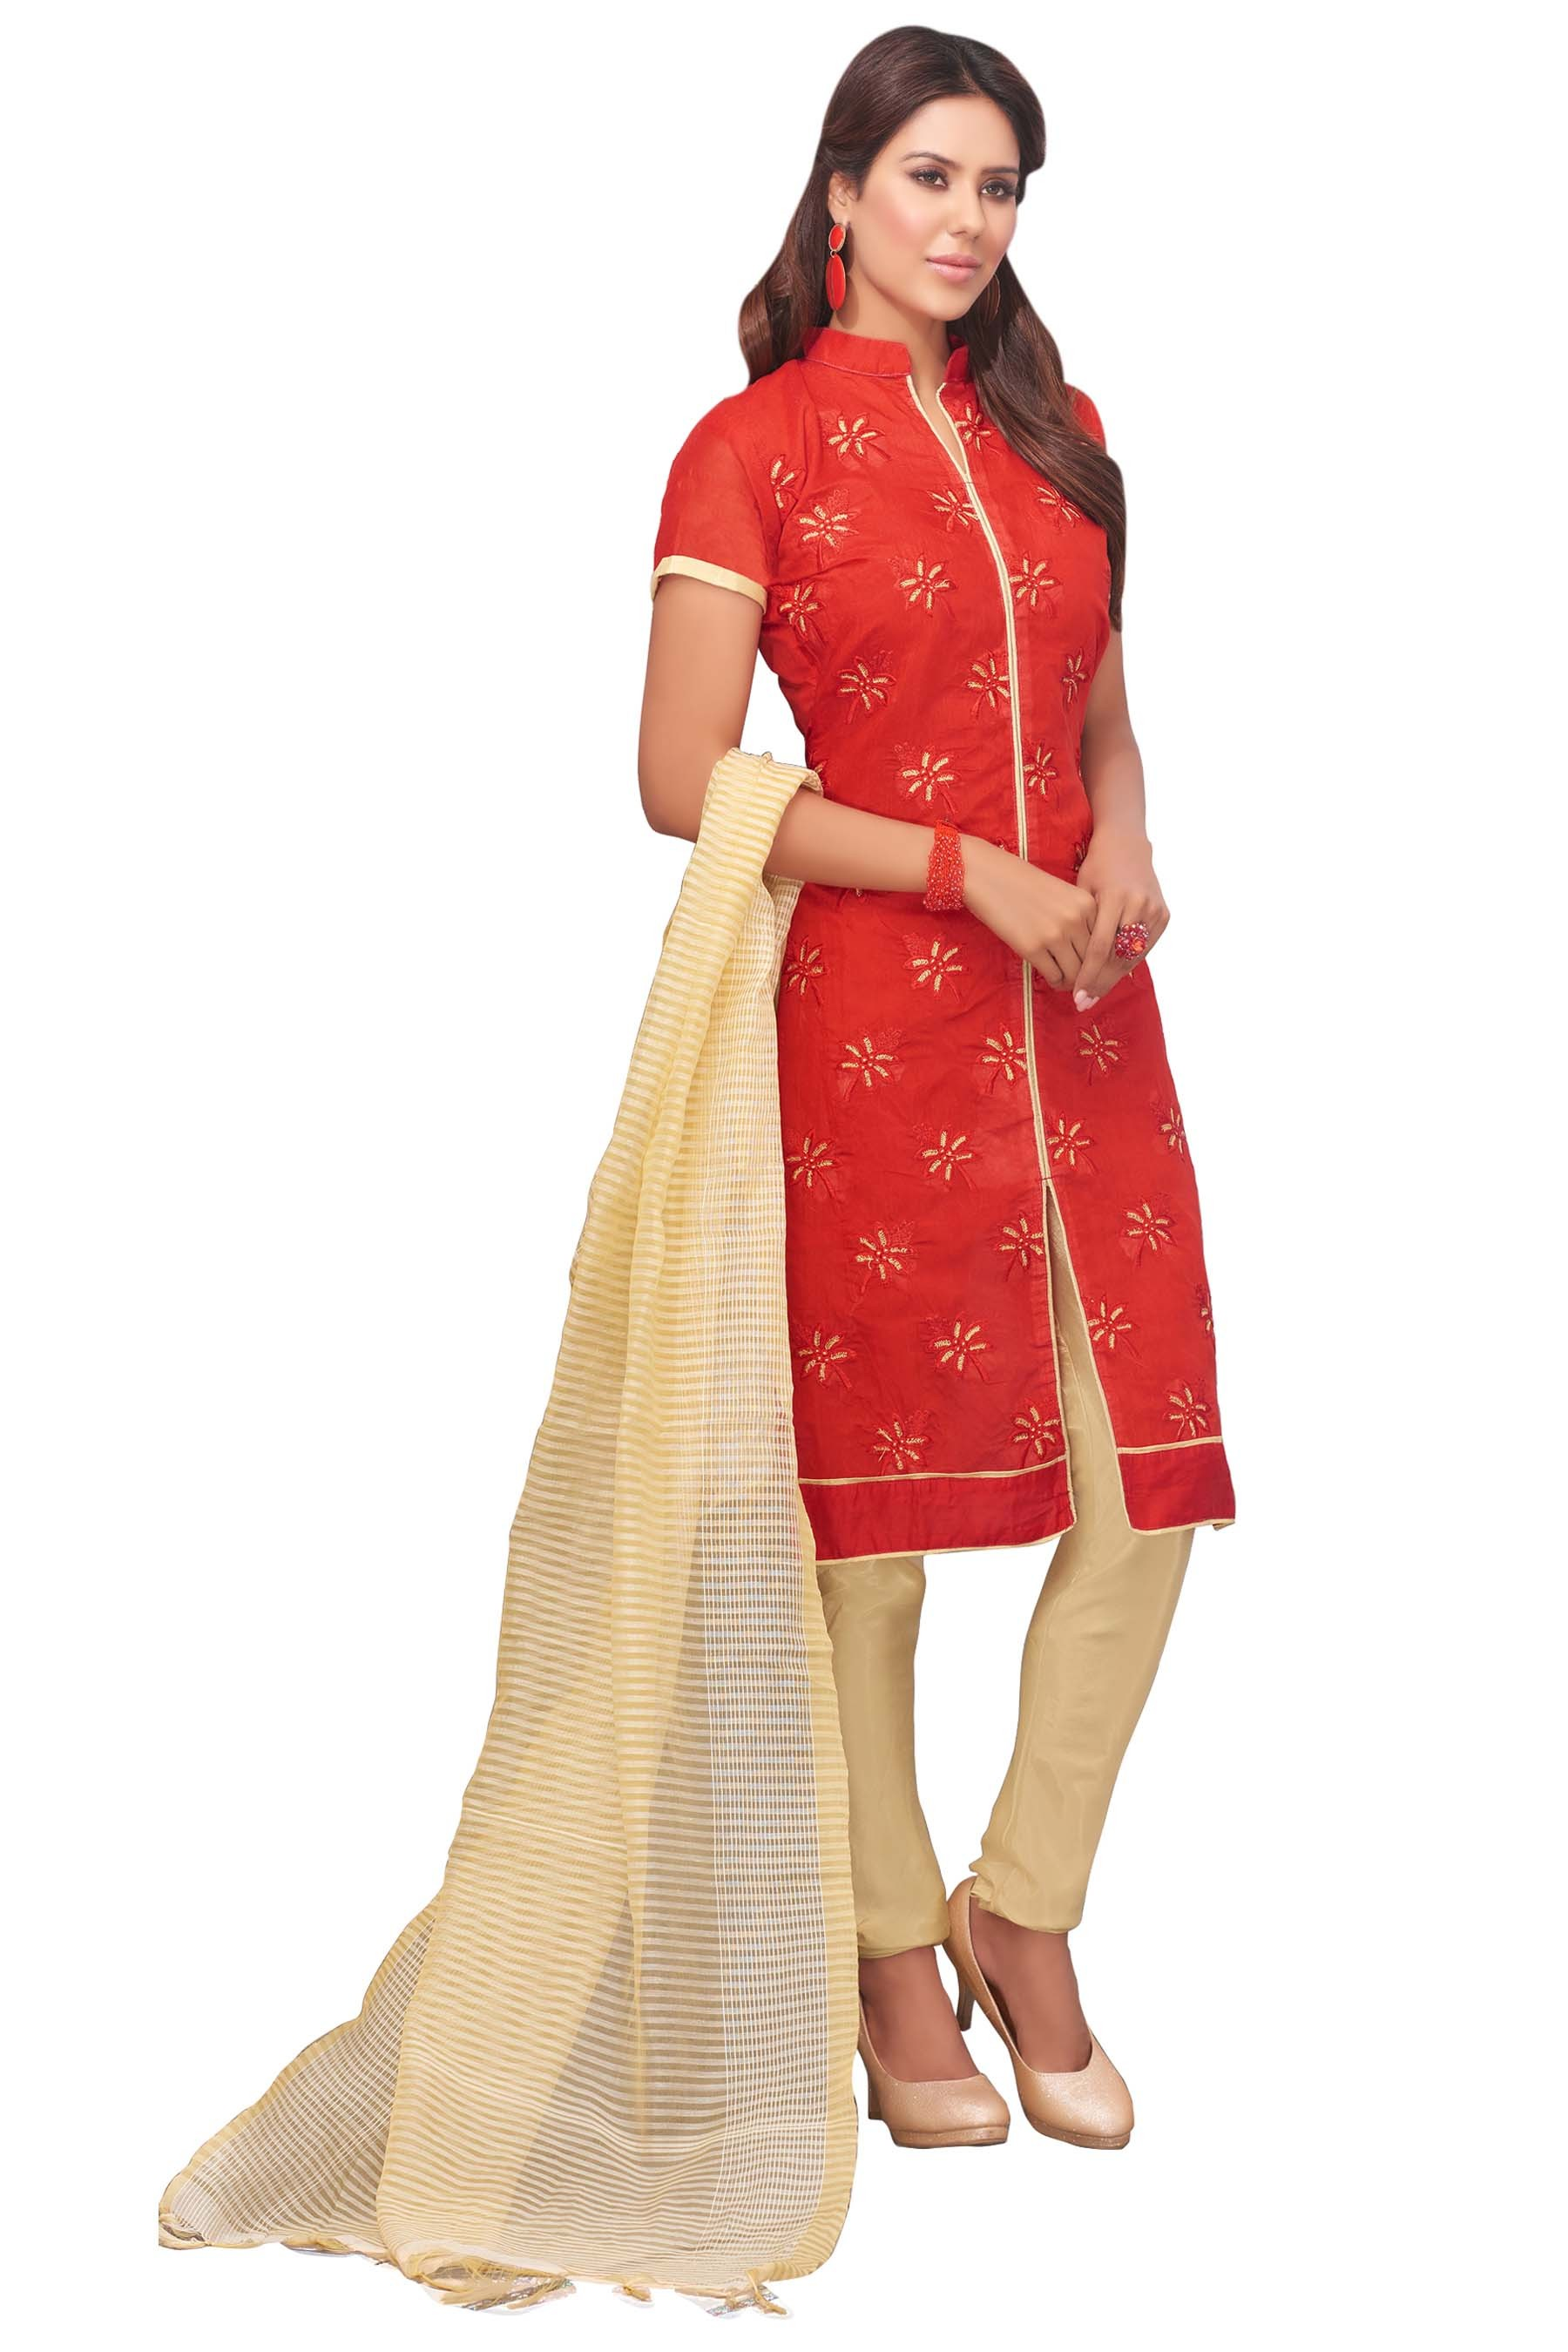 Party Wear Chanderi Silk Red Churidar Suit - RASIKA 23014